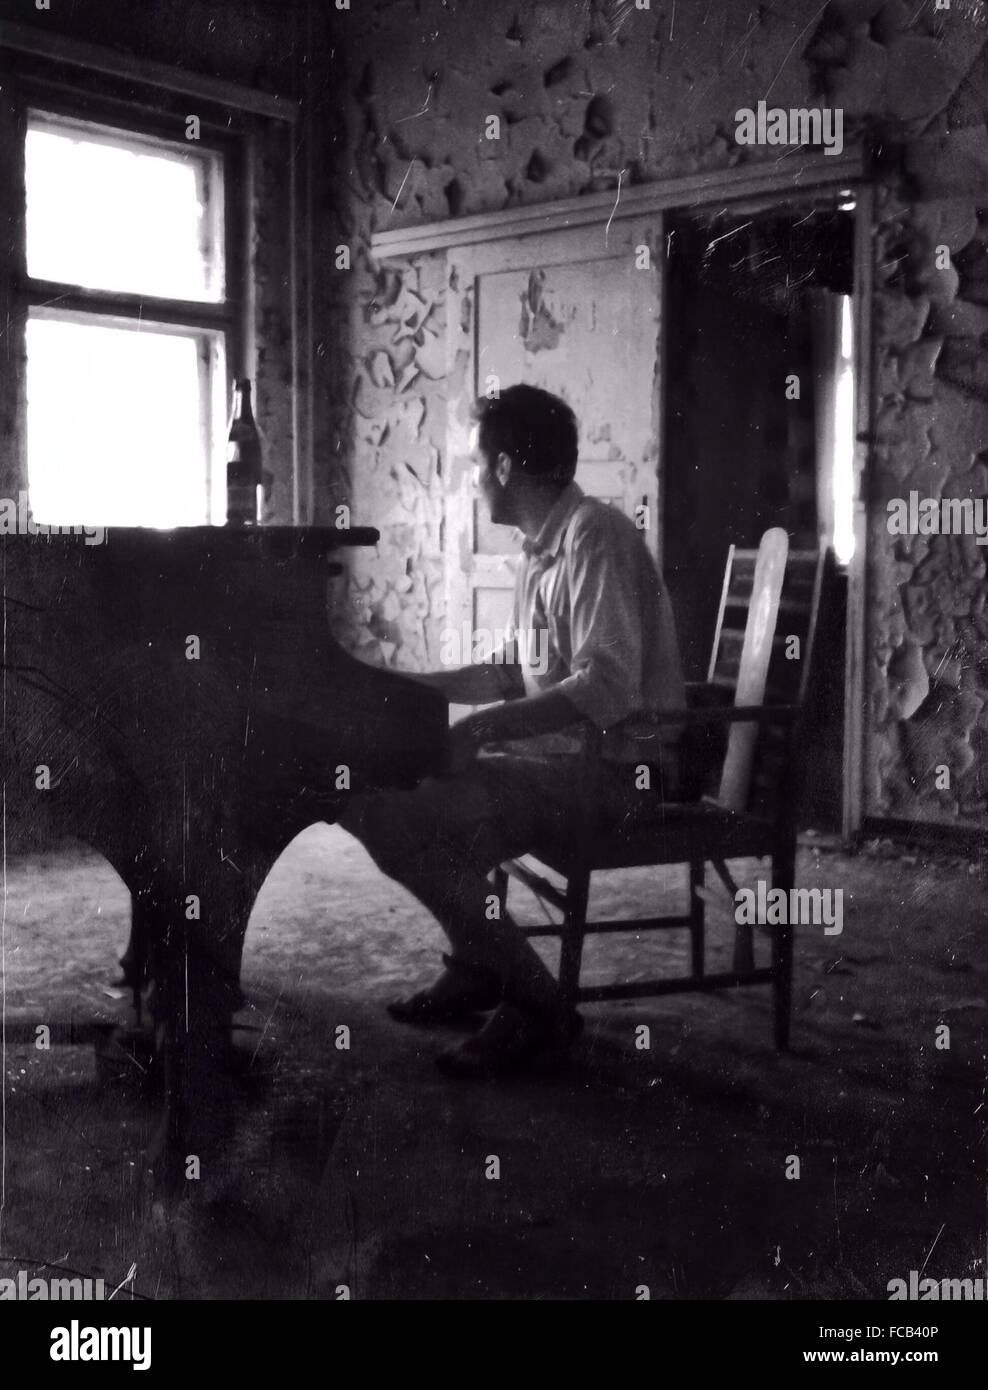 Full Length Of Pianist Playing Piano In Abandoned Home - Stock Image